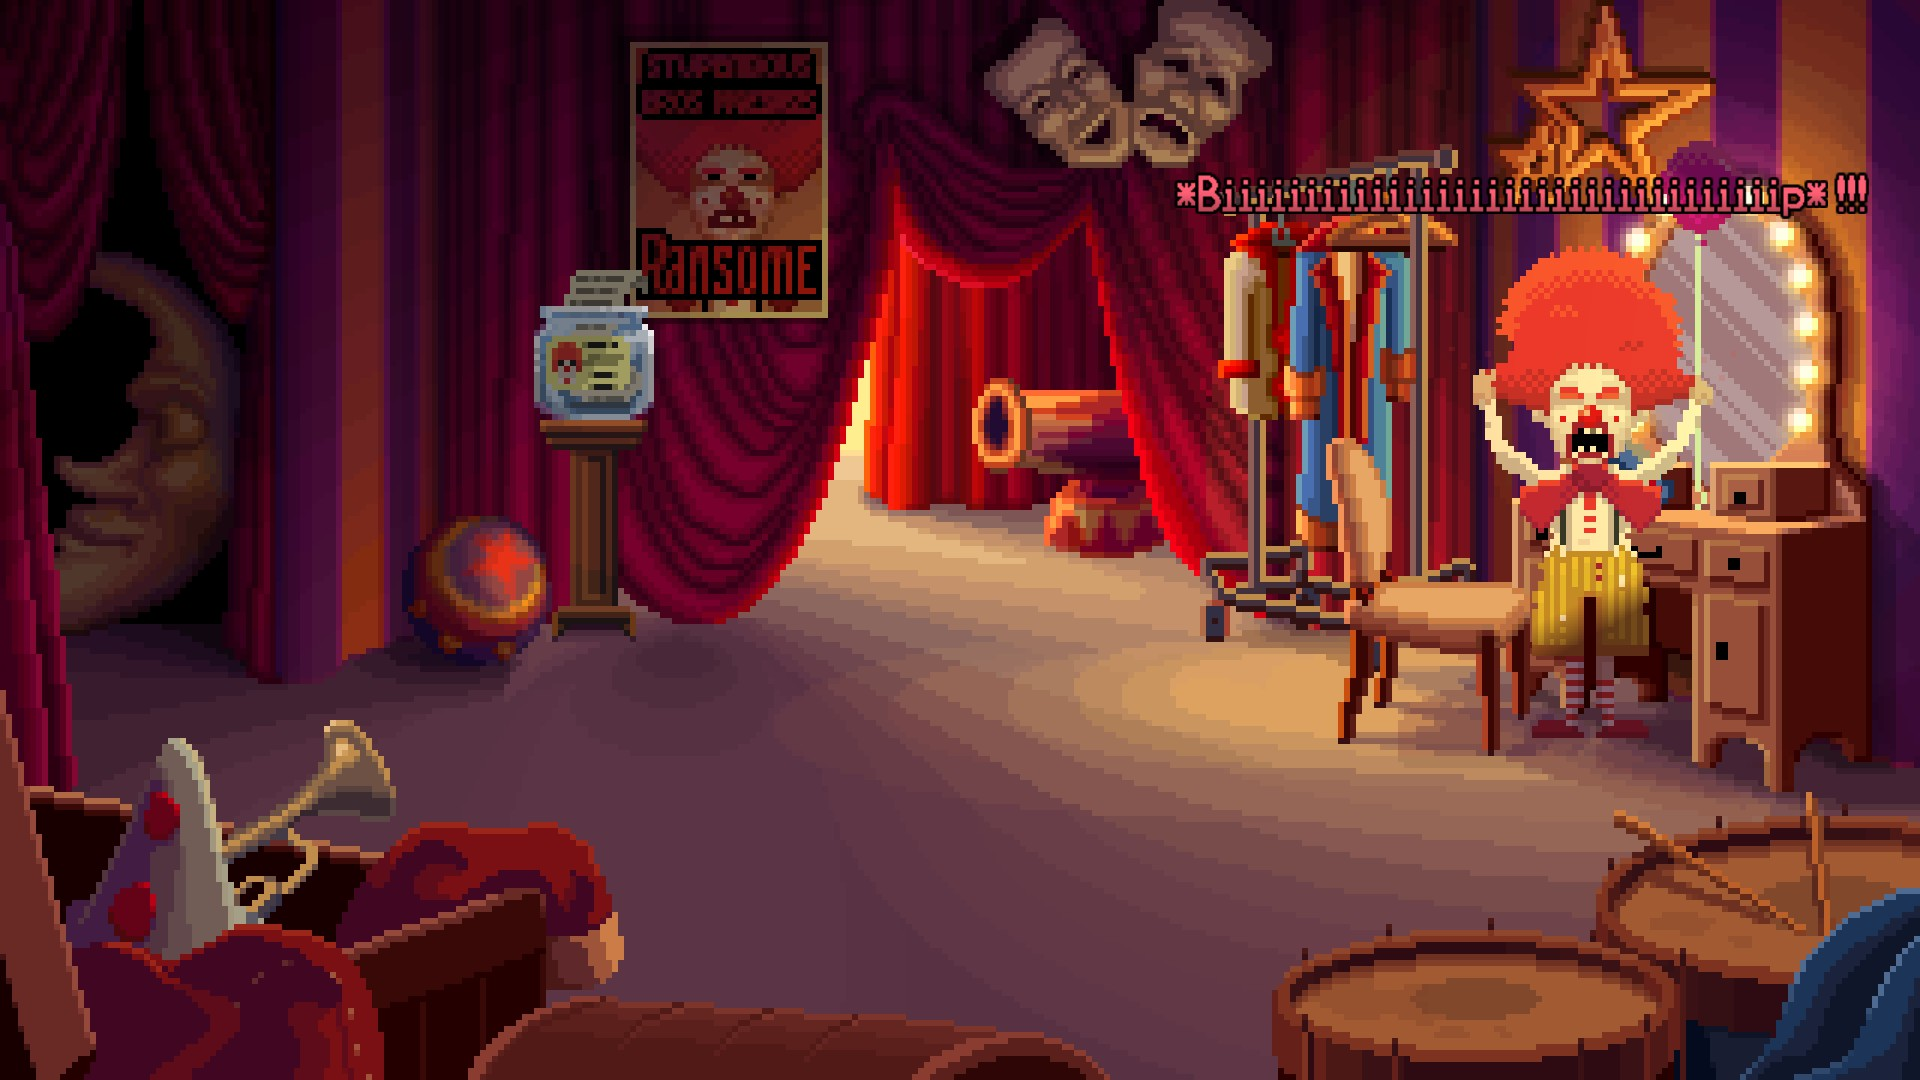 Ransome dans Thimbleweed Park